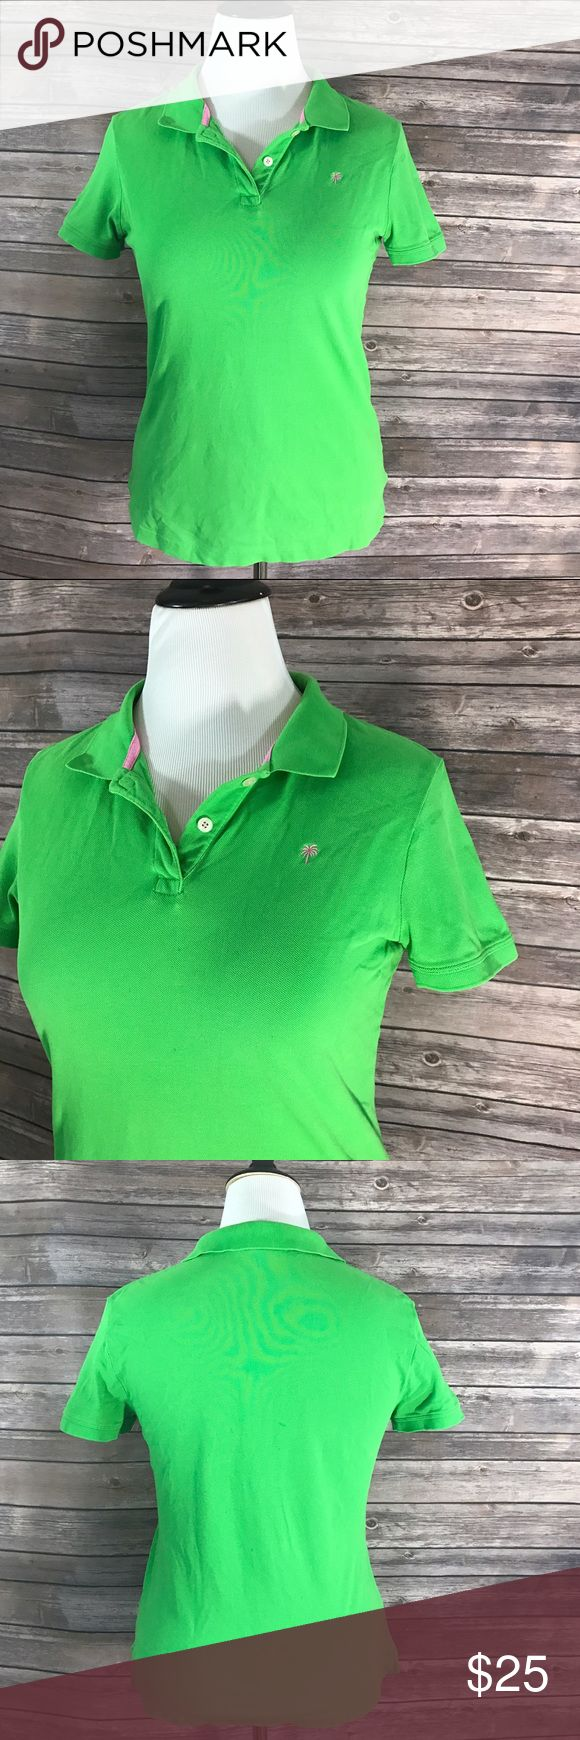 Lilly Pulitzer Womens Polo Top Size Large Green Lilly Pulitzer Womens Polo Top Size Large Green Short Sleeve Collared. Measurements: (in inches) Underarm to underarm: 19 Length: 25  Good, gently used condition Lilly Pulitzer Tops Tees - Short Sleeve